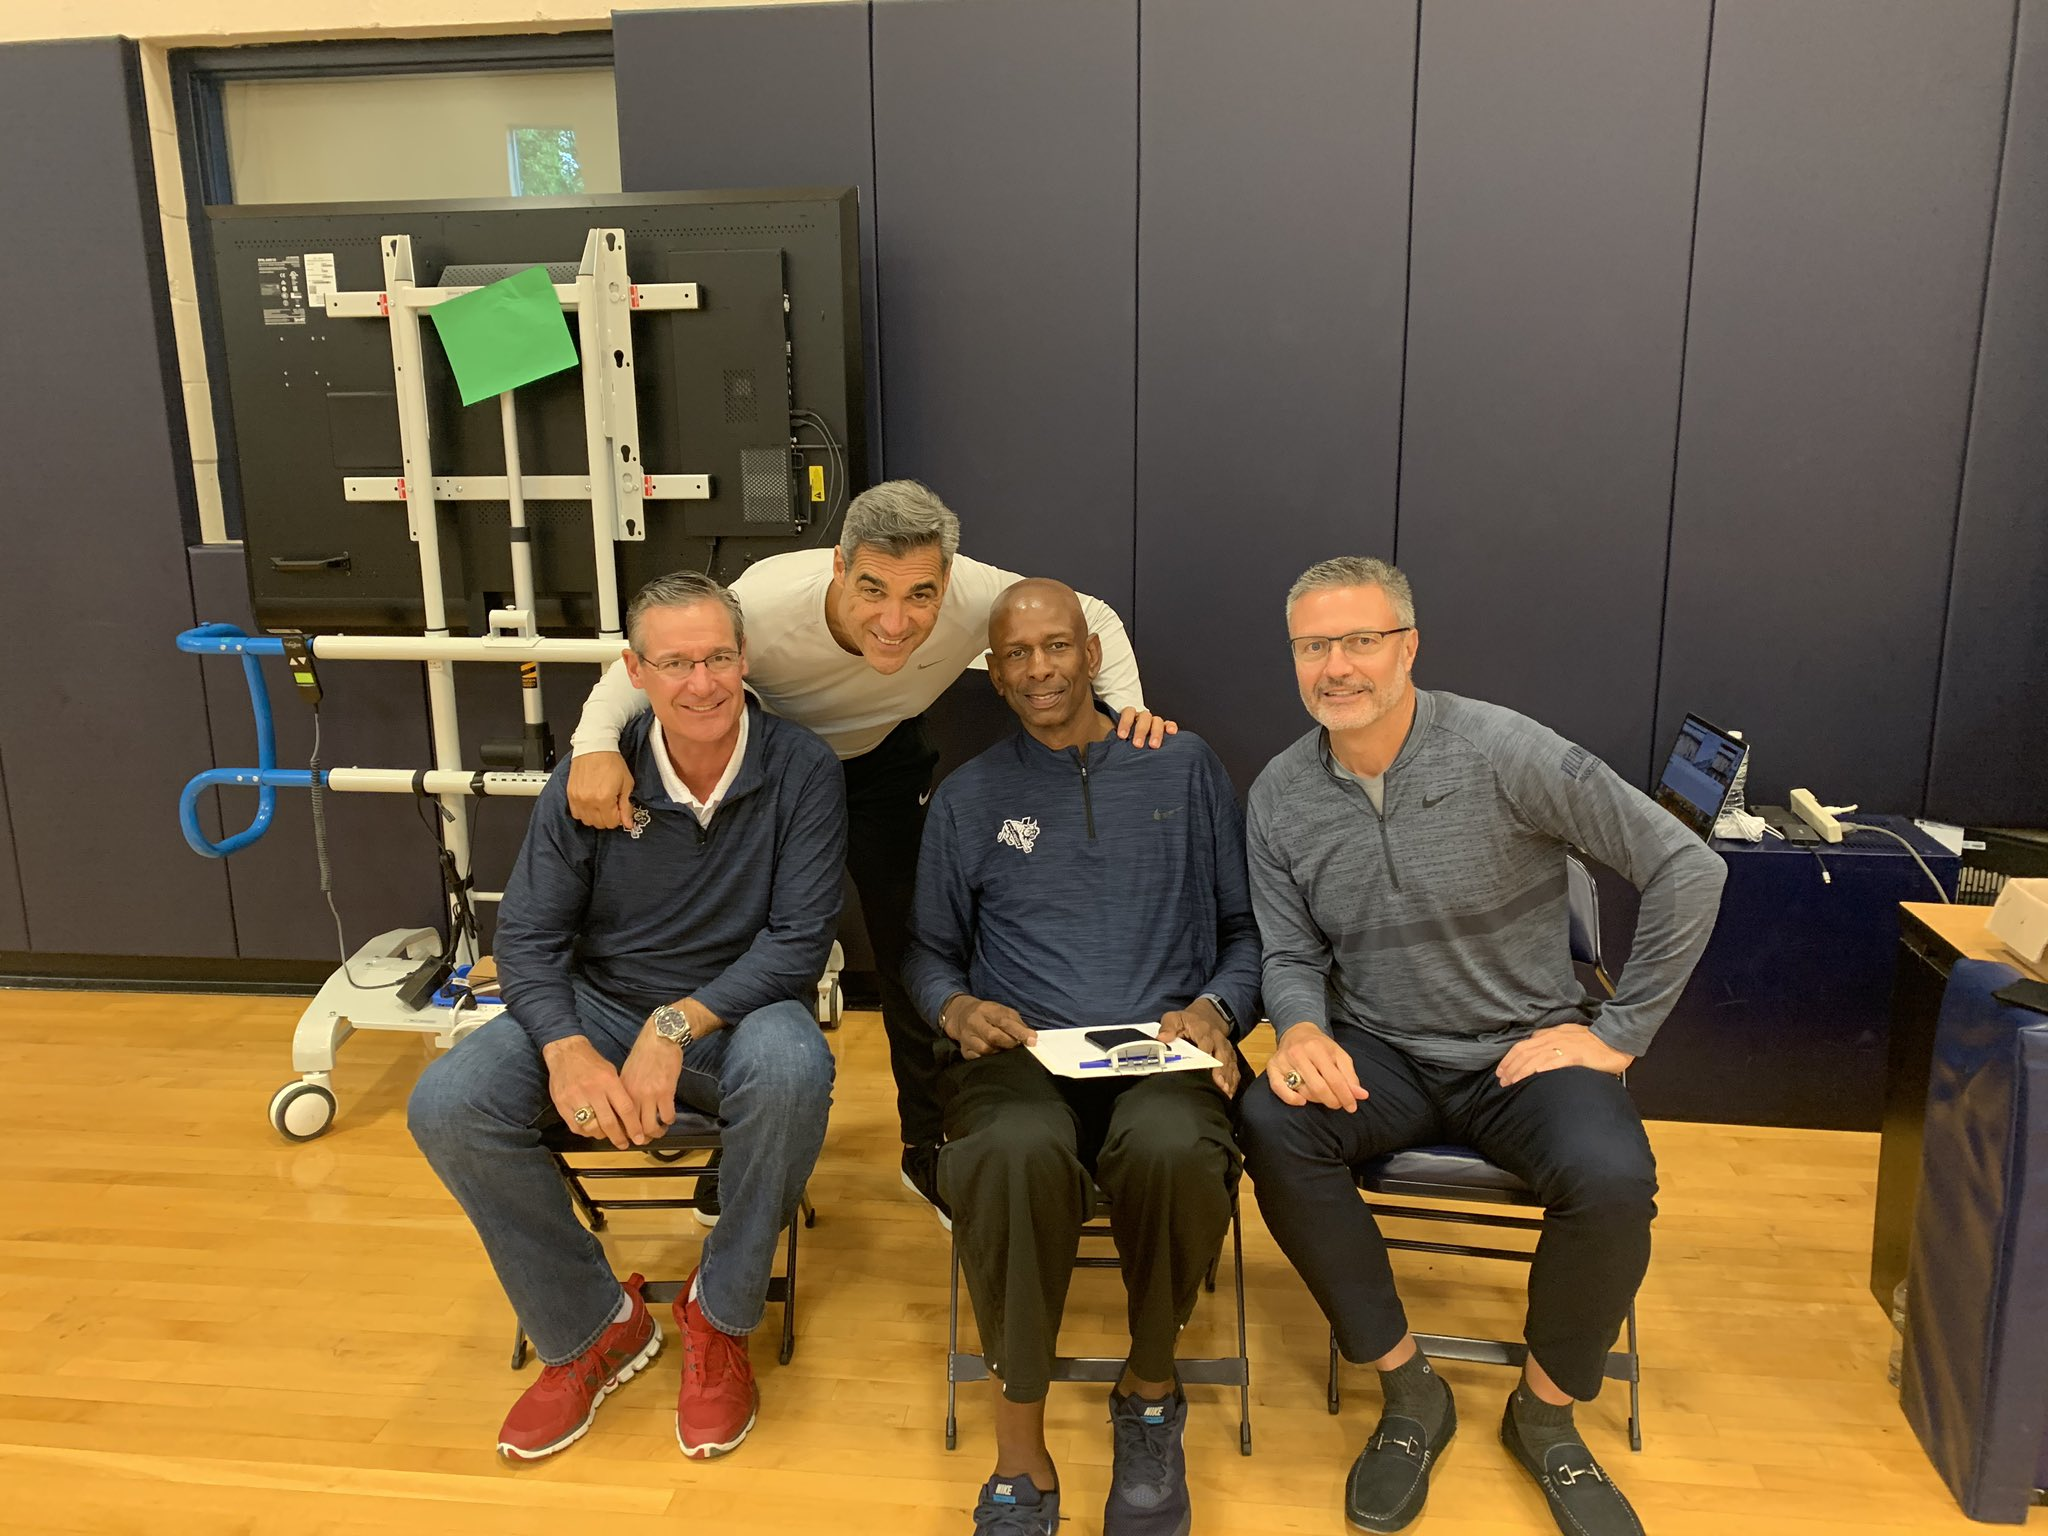 We're always inspired when legends return on the court with us for practice !  @dougwestbball @HJ1985 @MarkPlansky https://t.co/a3Y1G8RDb3